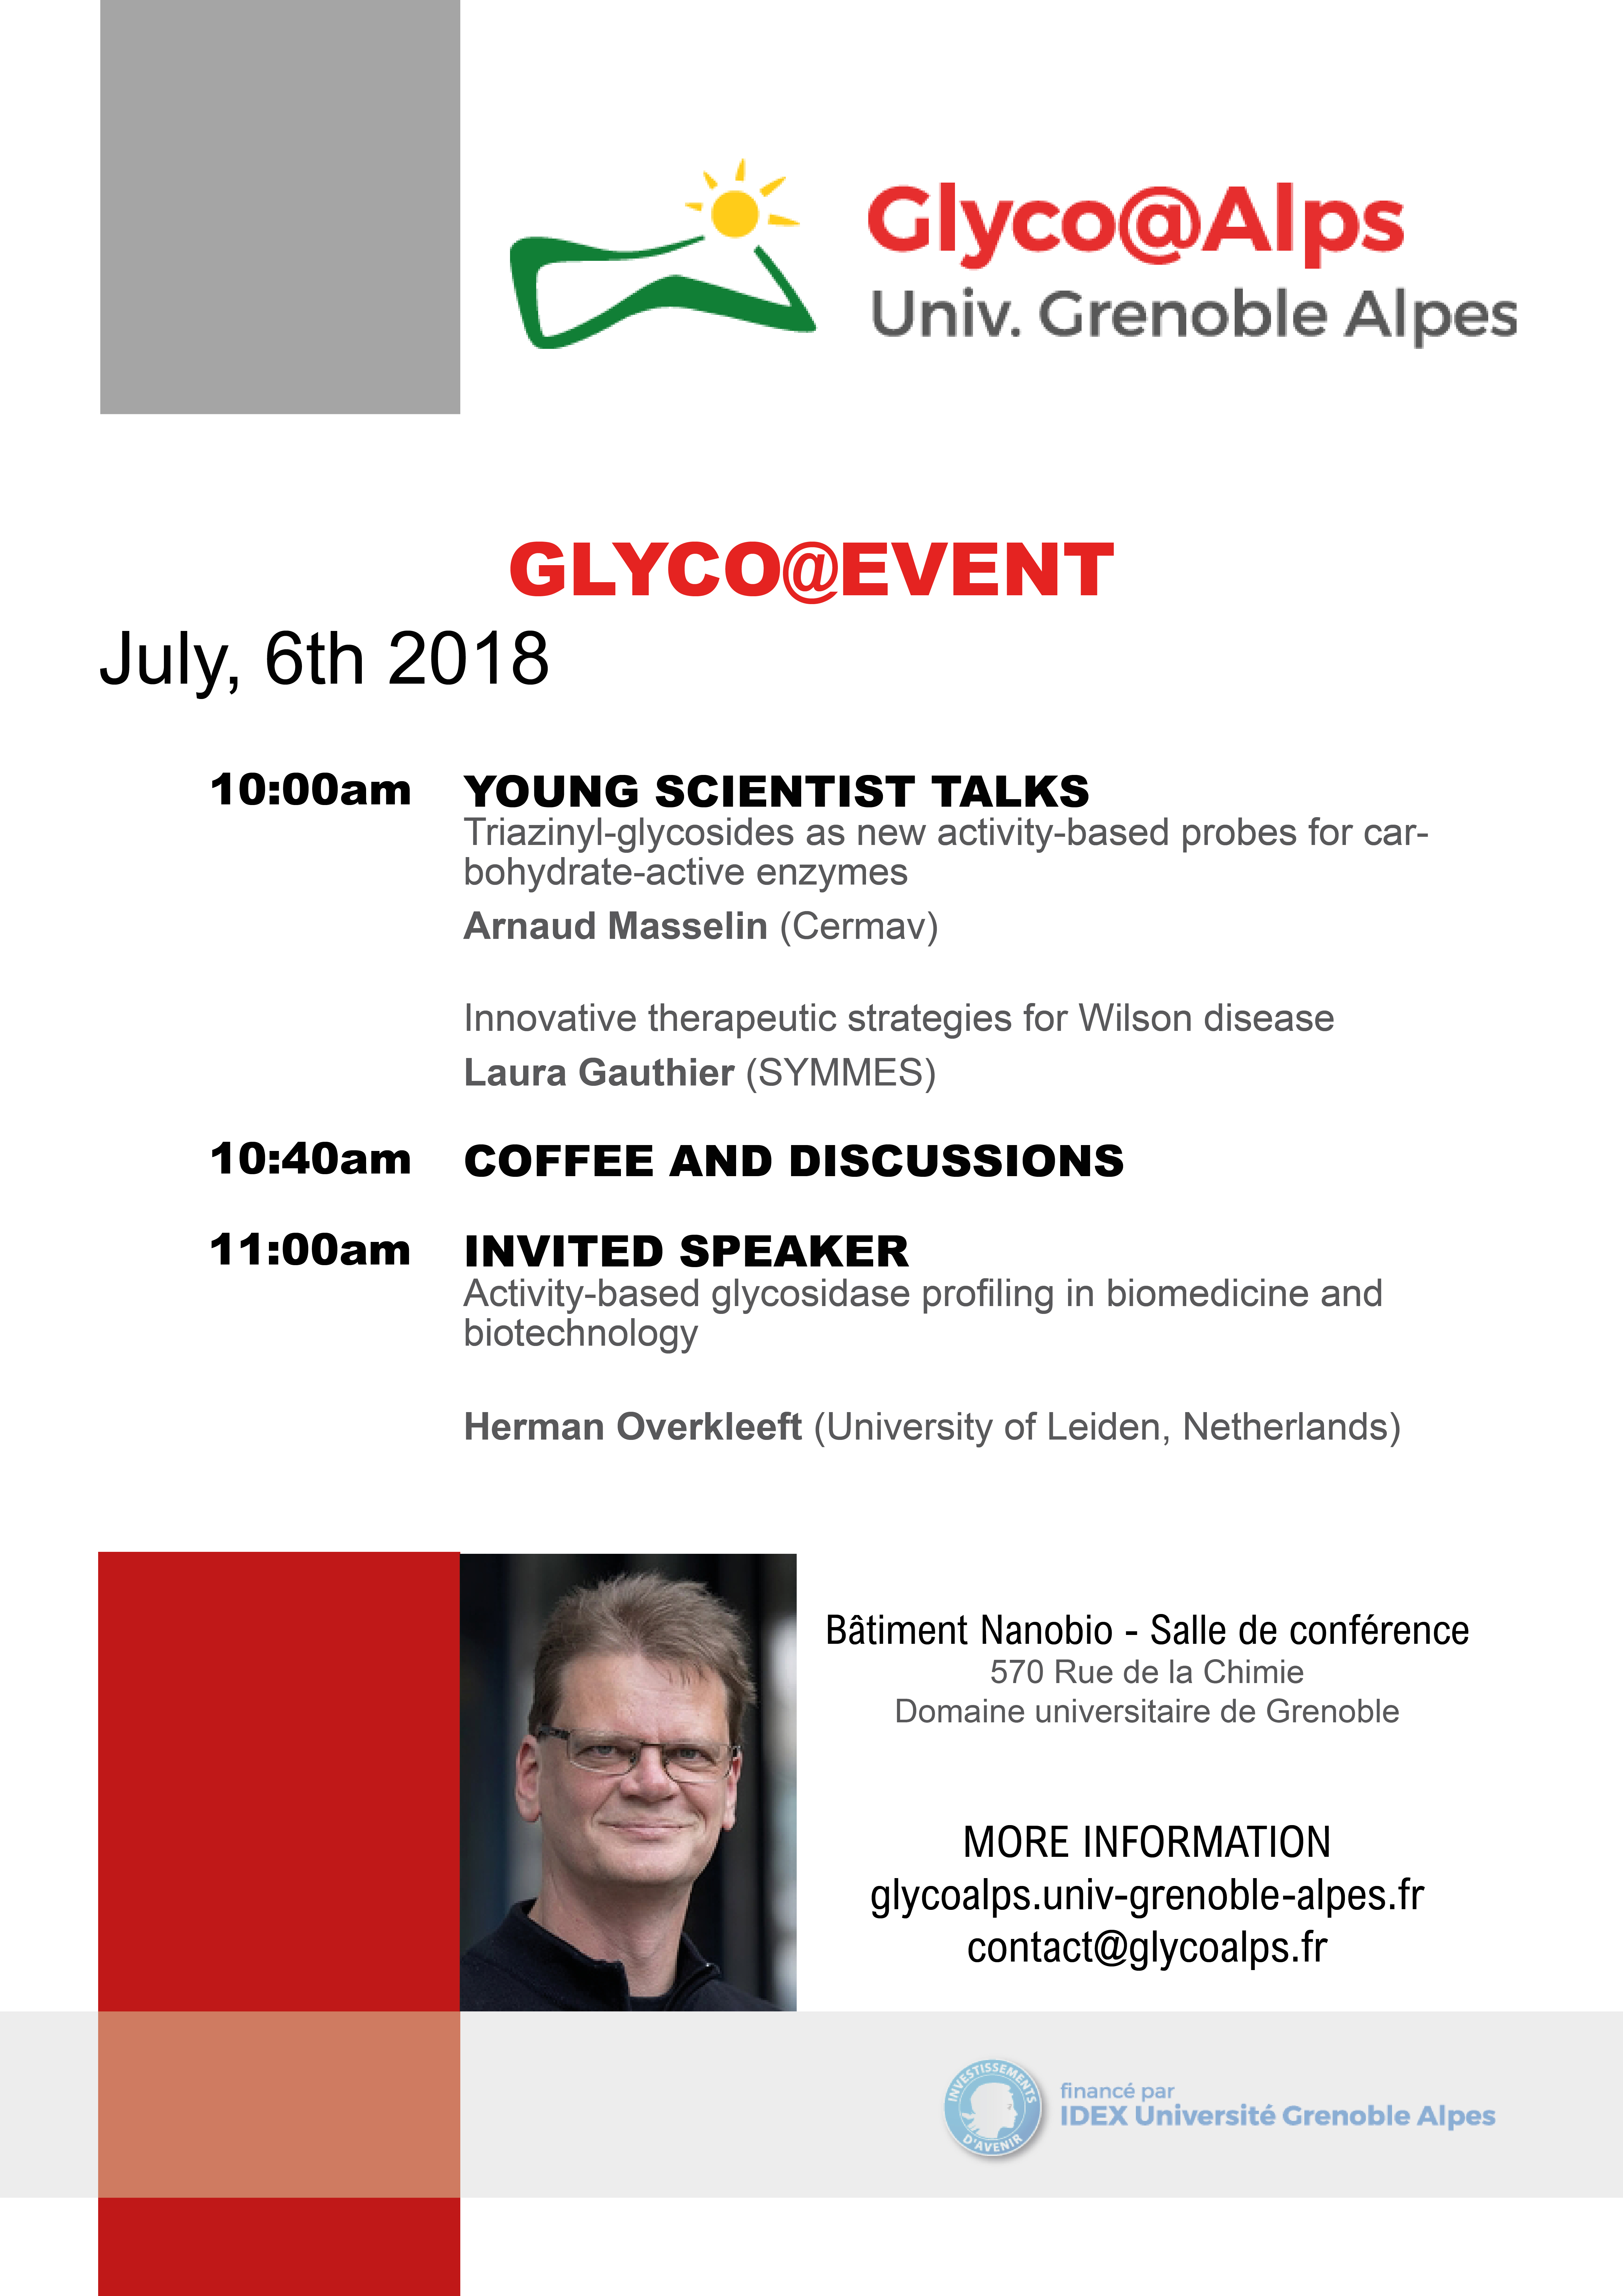 GlycoEvent 6 July